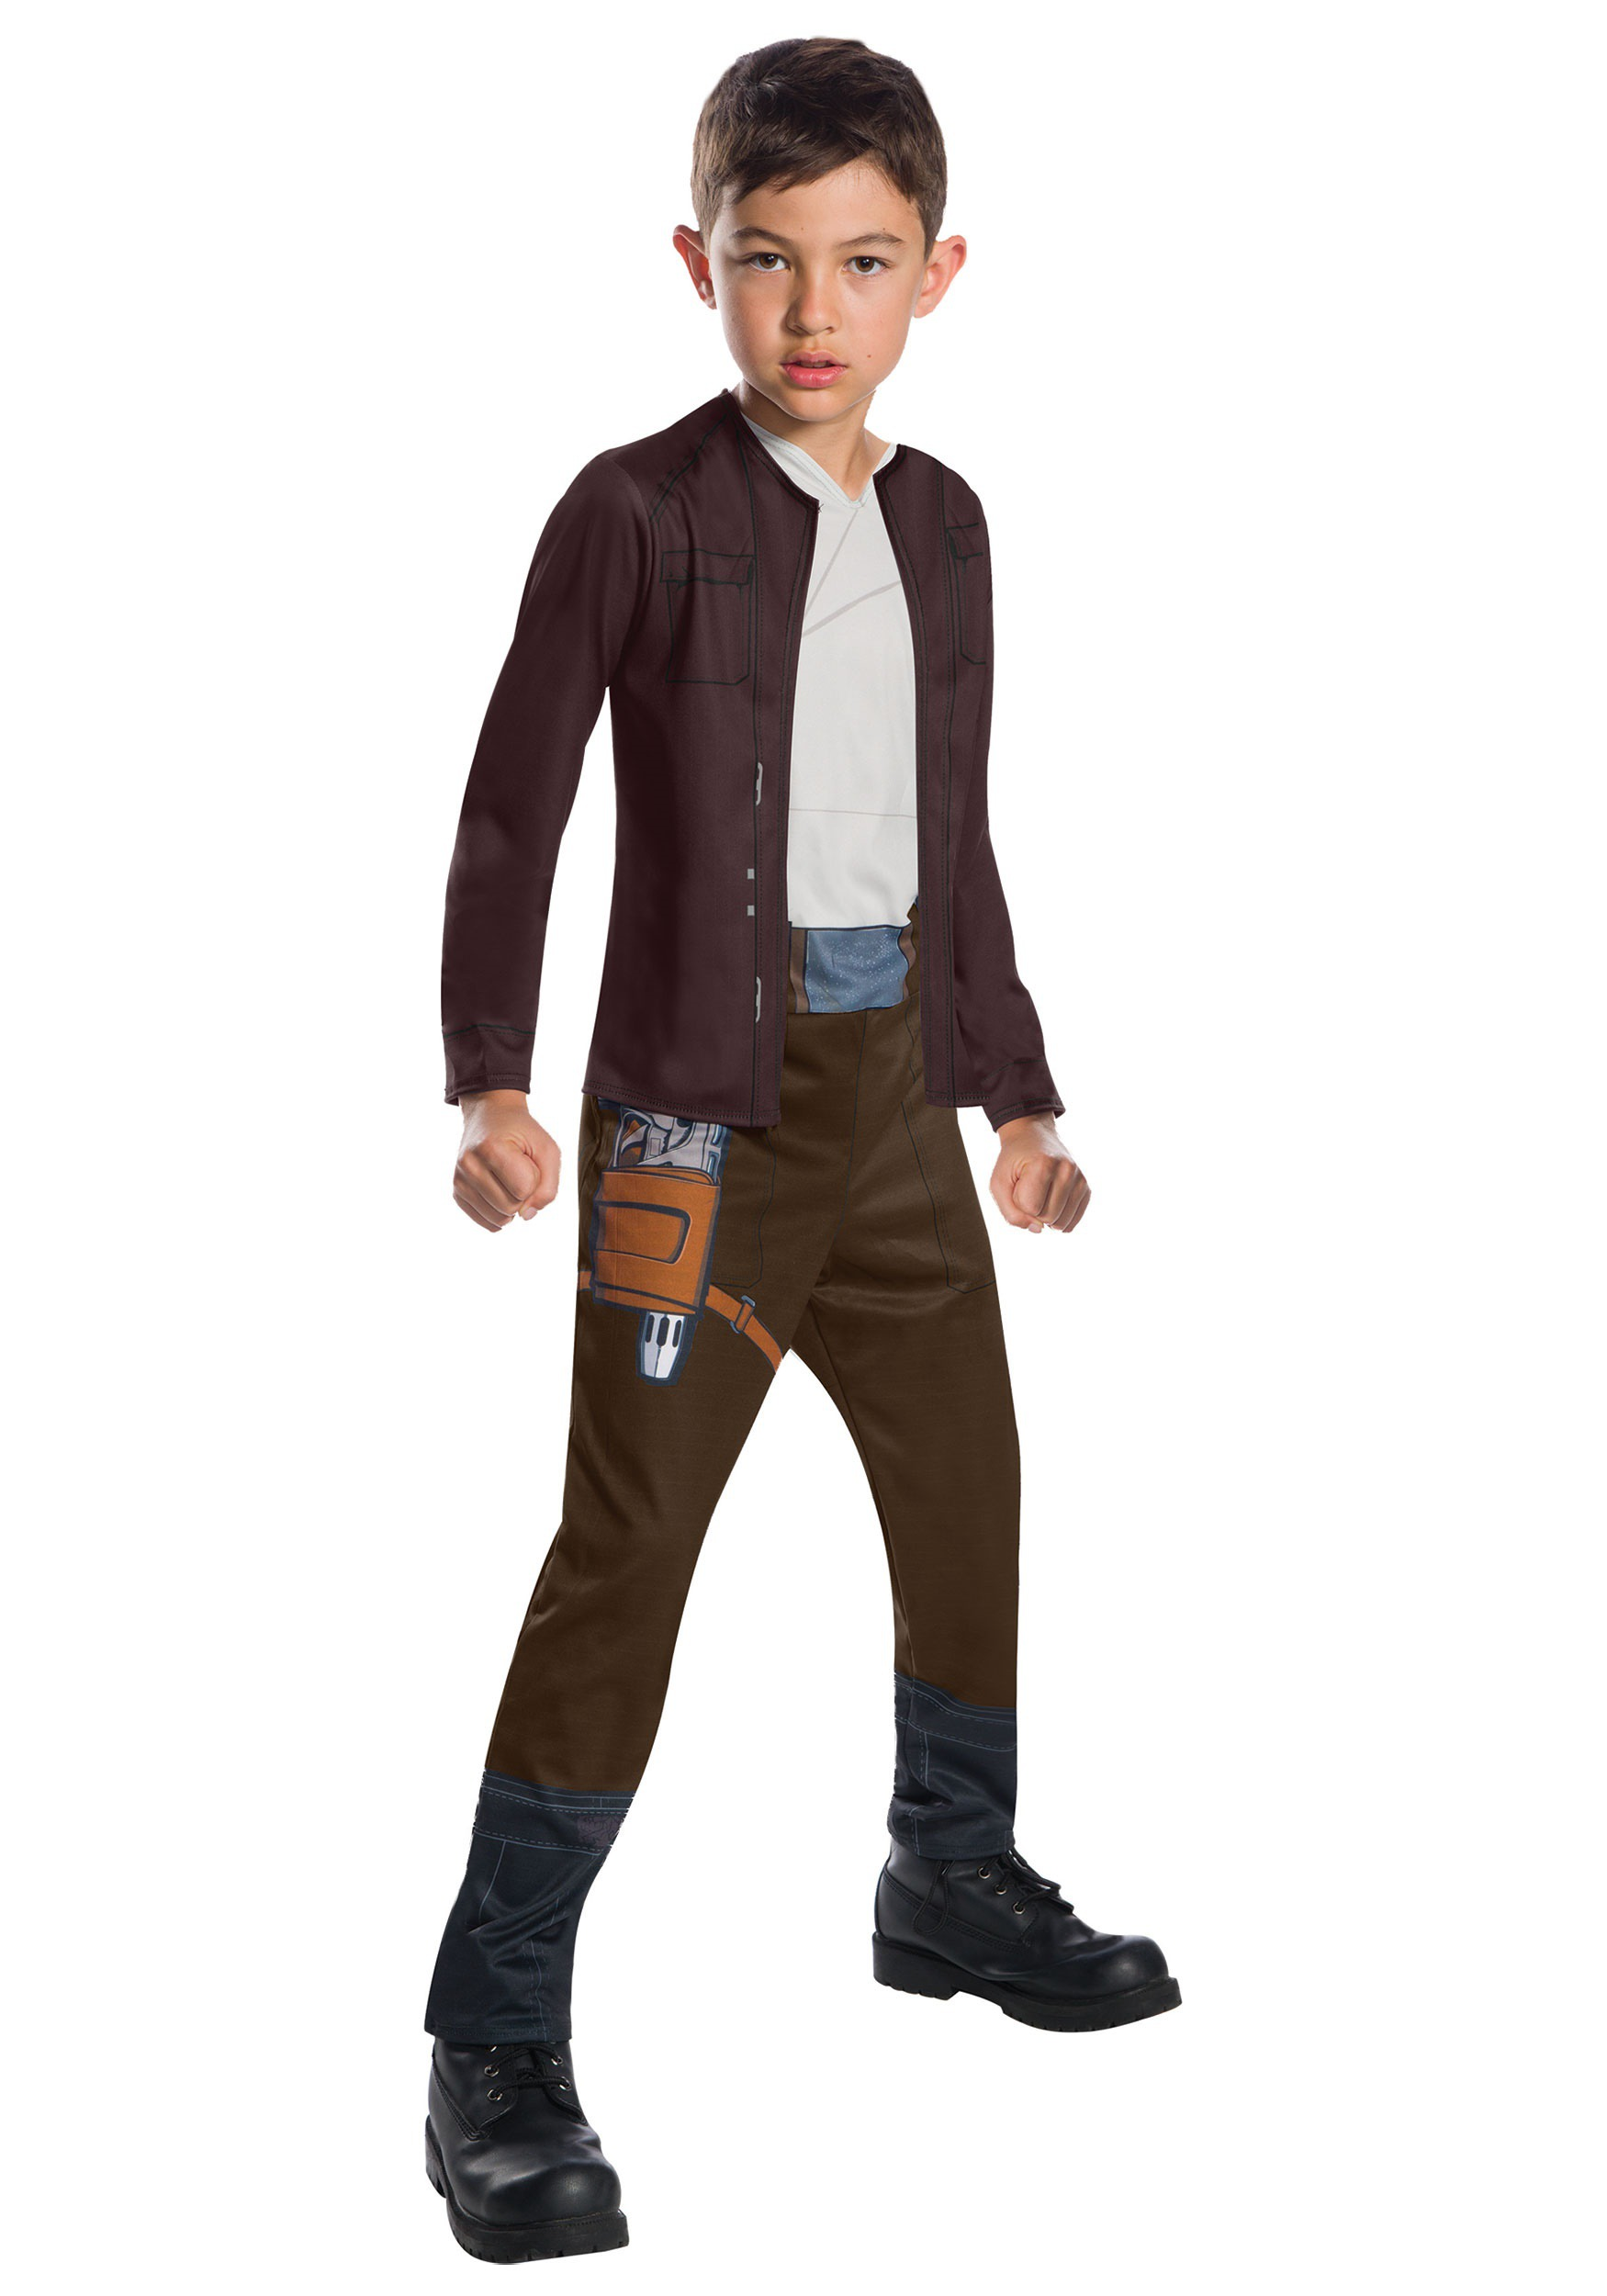 Star Wars The Last Jedi Costumes